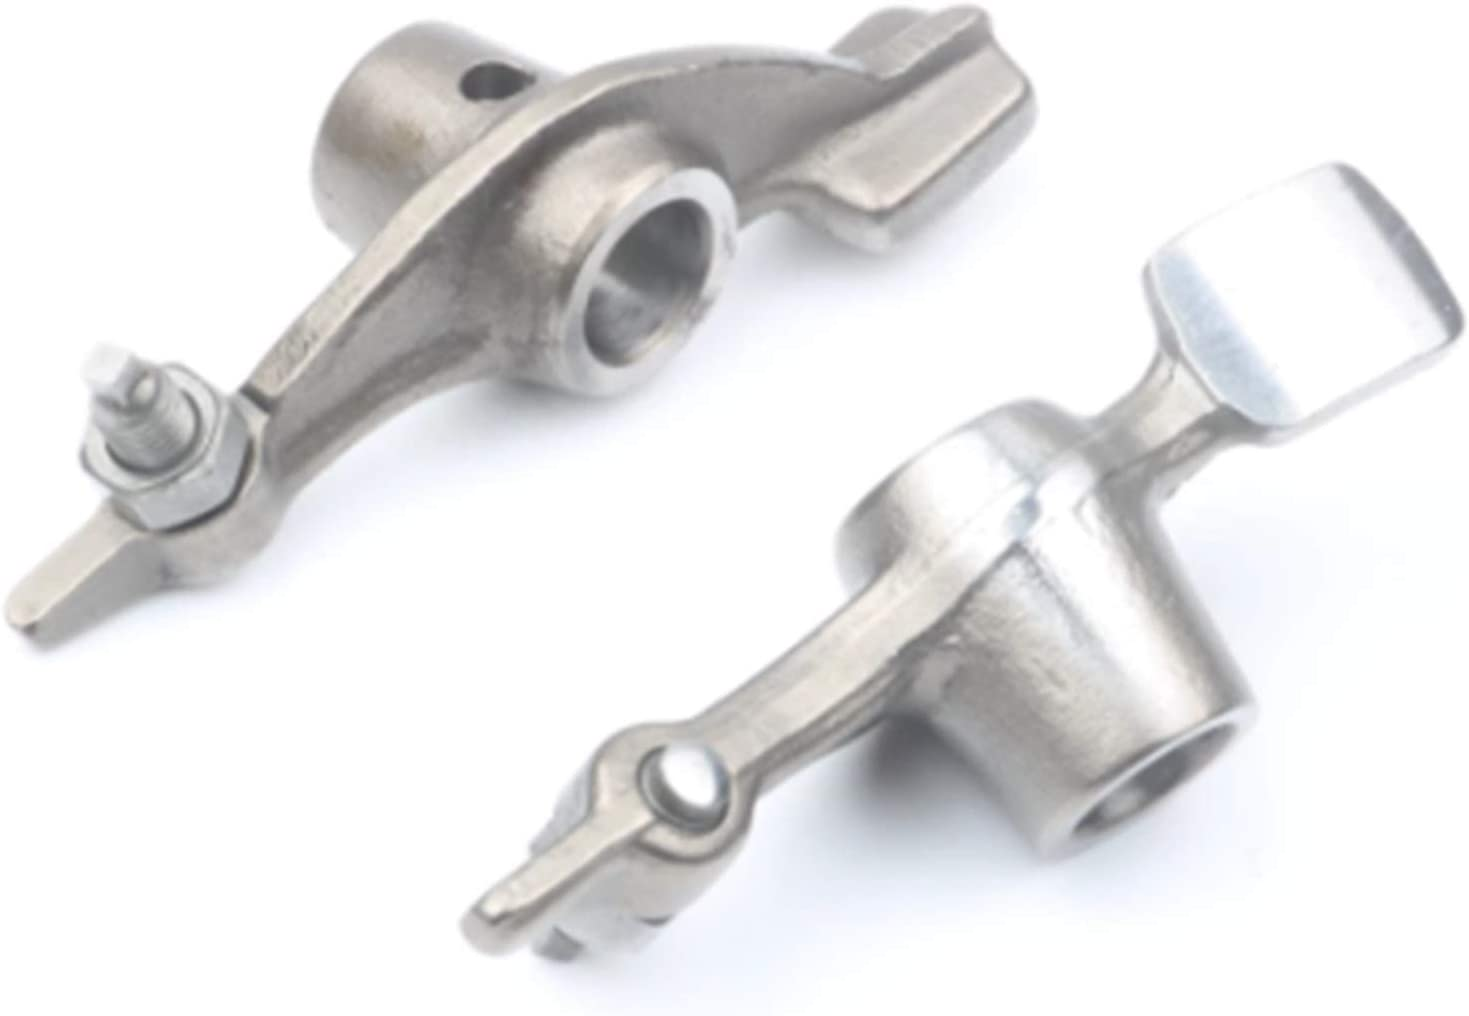 XIAOFANG Motorcycle Rocker Arm Fit For Yamaha AG200 YP250 SR125 150 185 SRZ150 SRV150 TW 125 200 225 Scooter Engine Parts